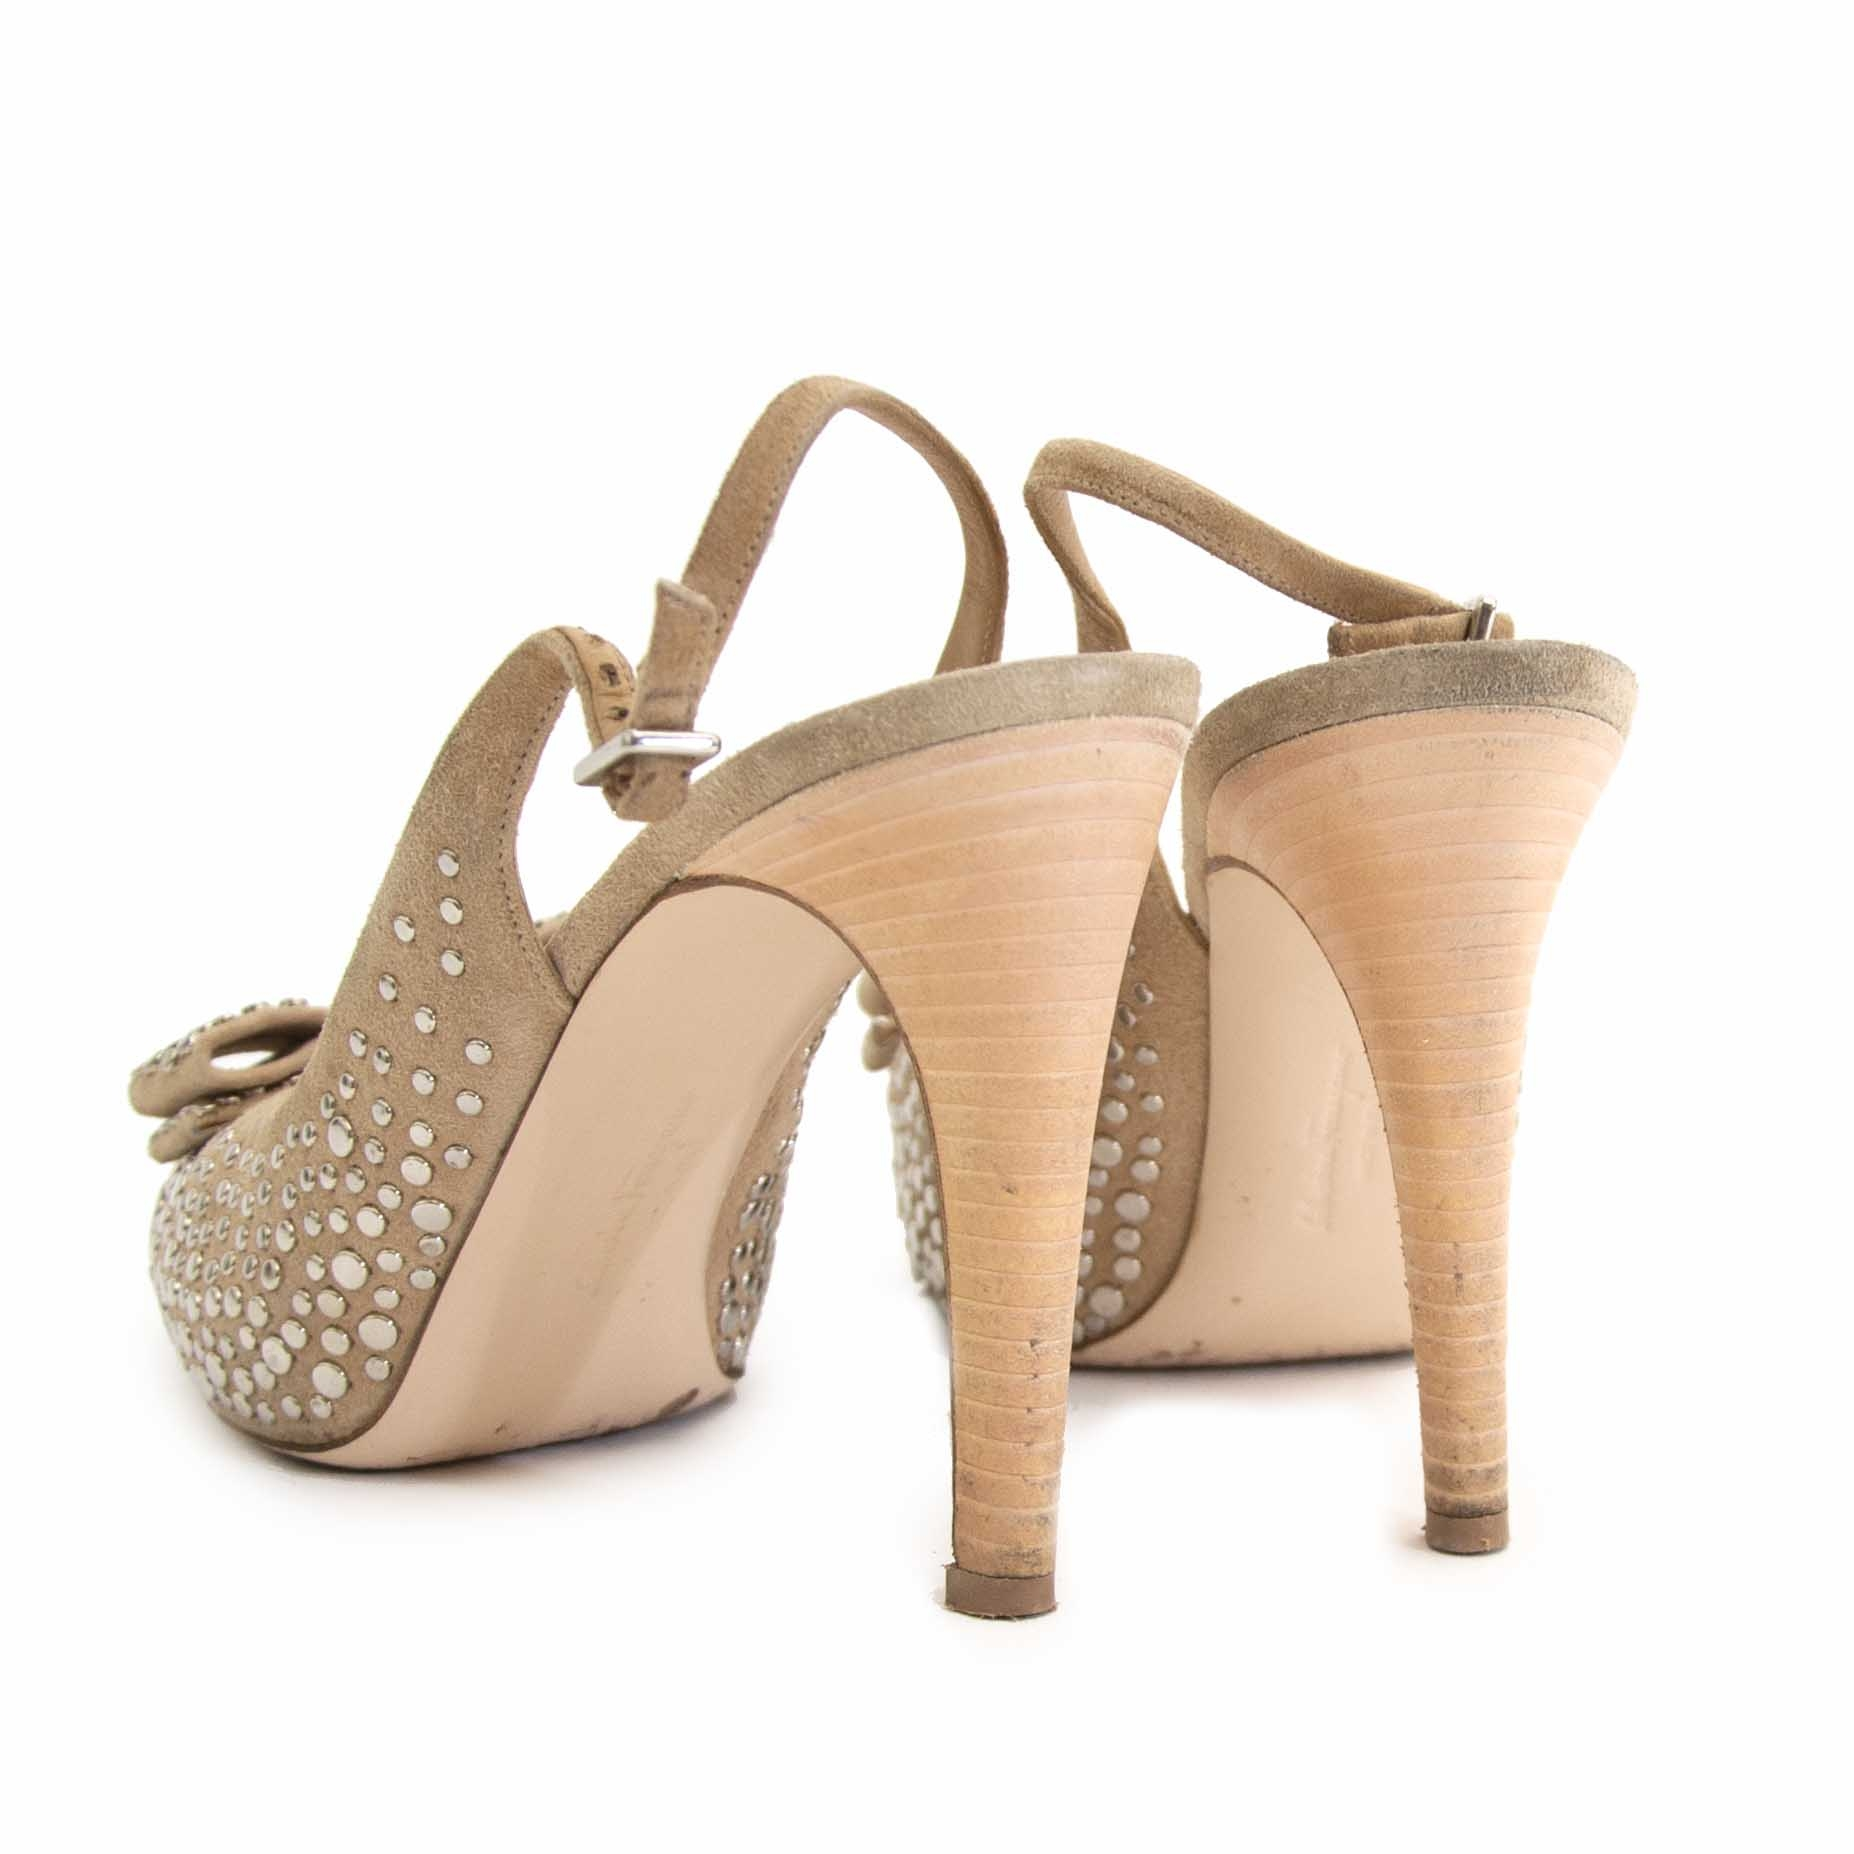 Achète seconde main Ferragamo Studded Heels Bow en ligne webshop LabelLOV